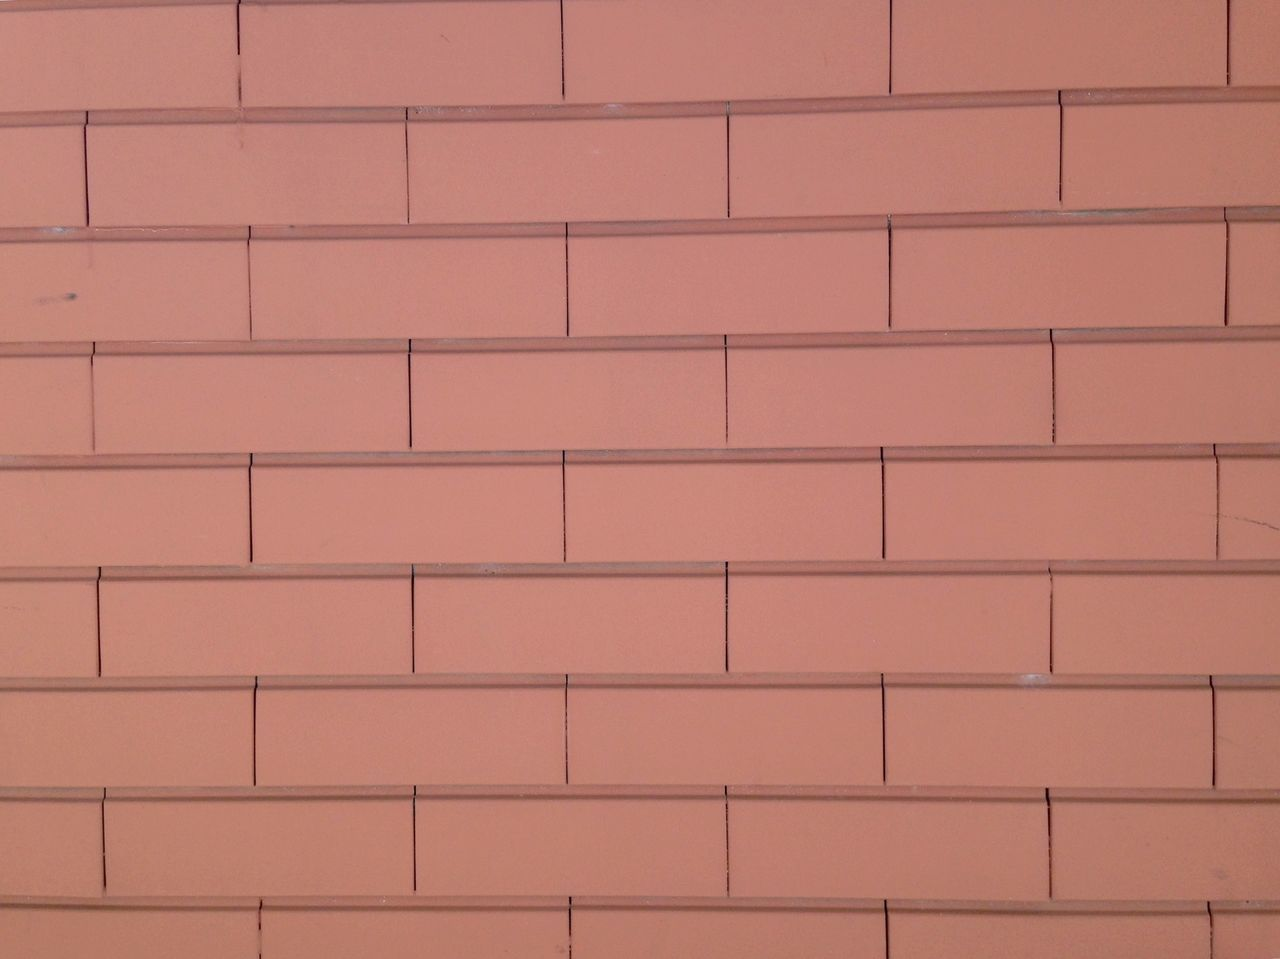 Pastel Power Wall Brick Wall Brick Bricks Brickporn Color Palette